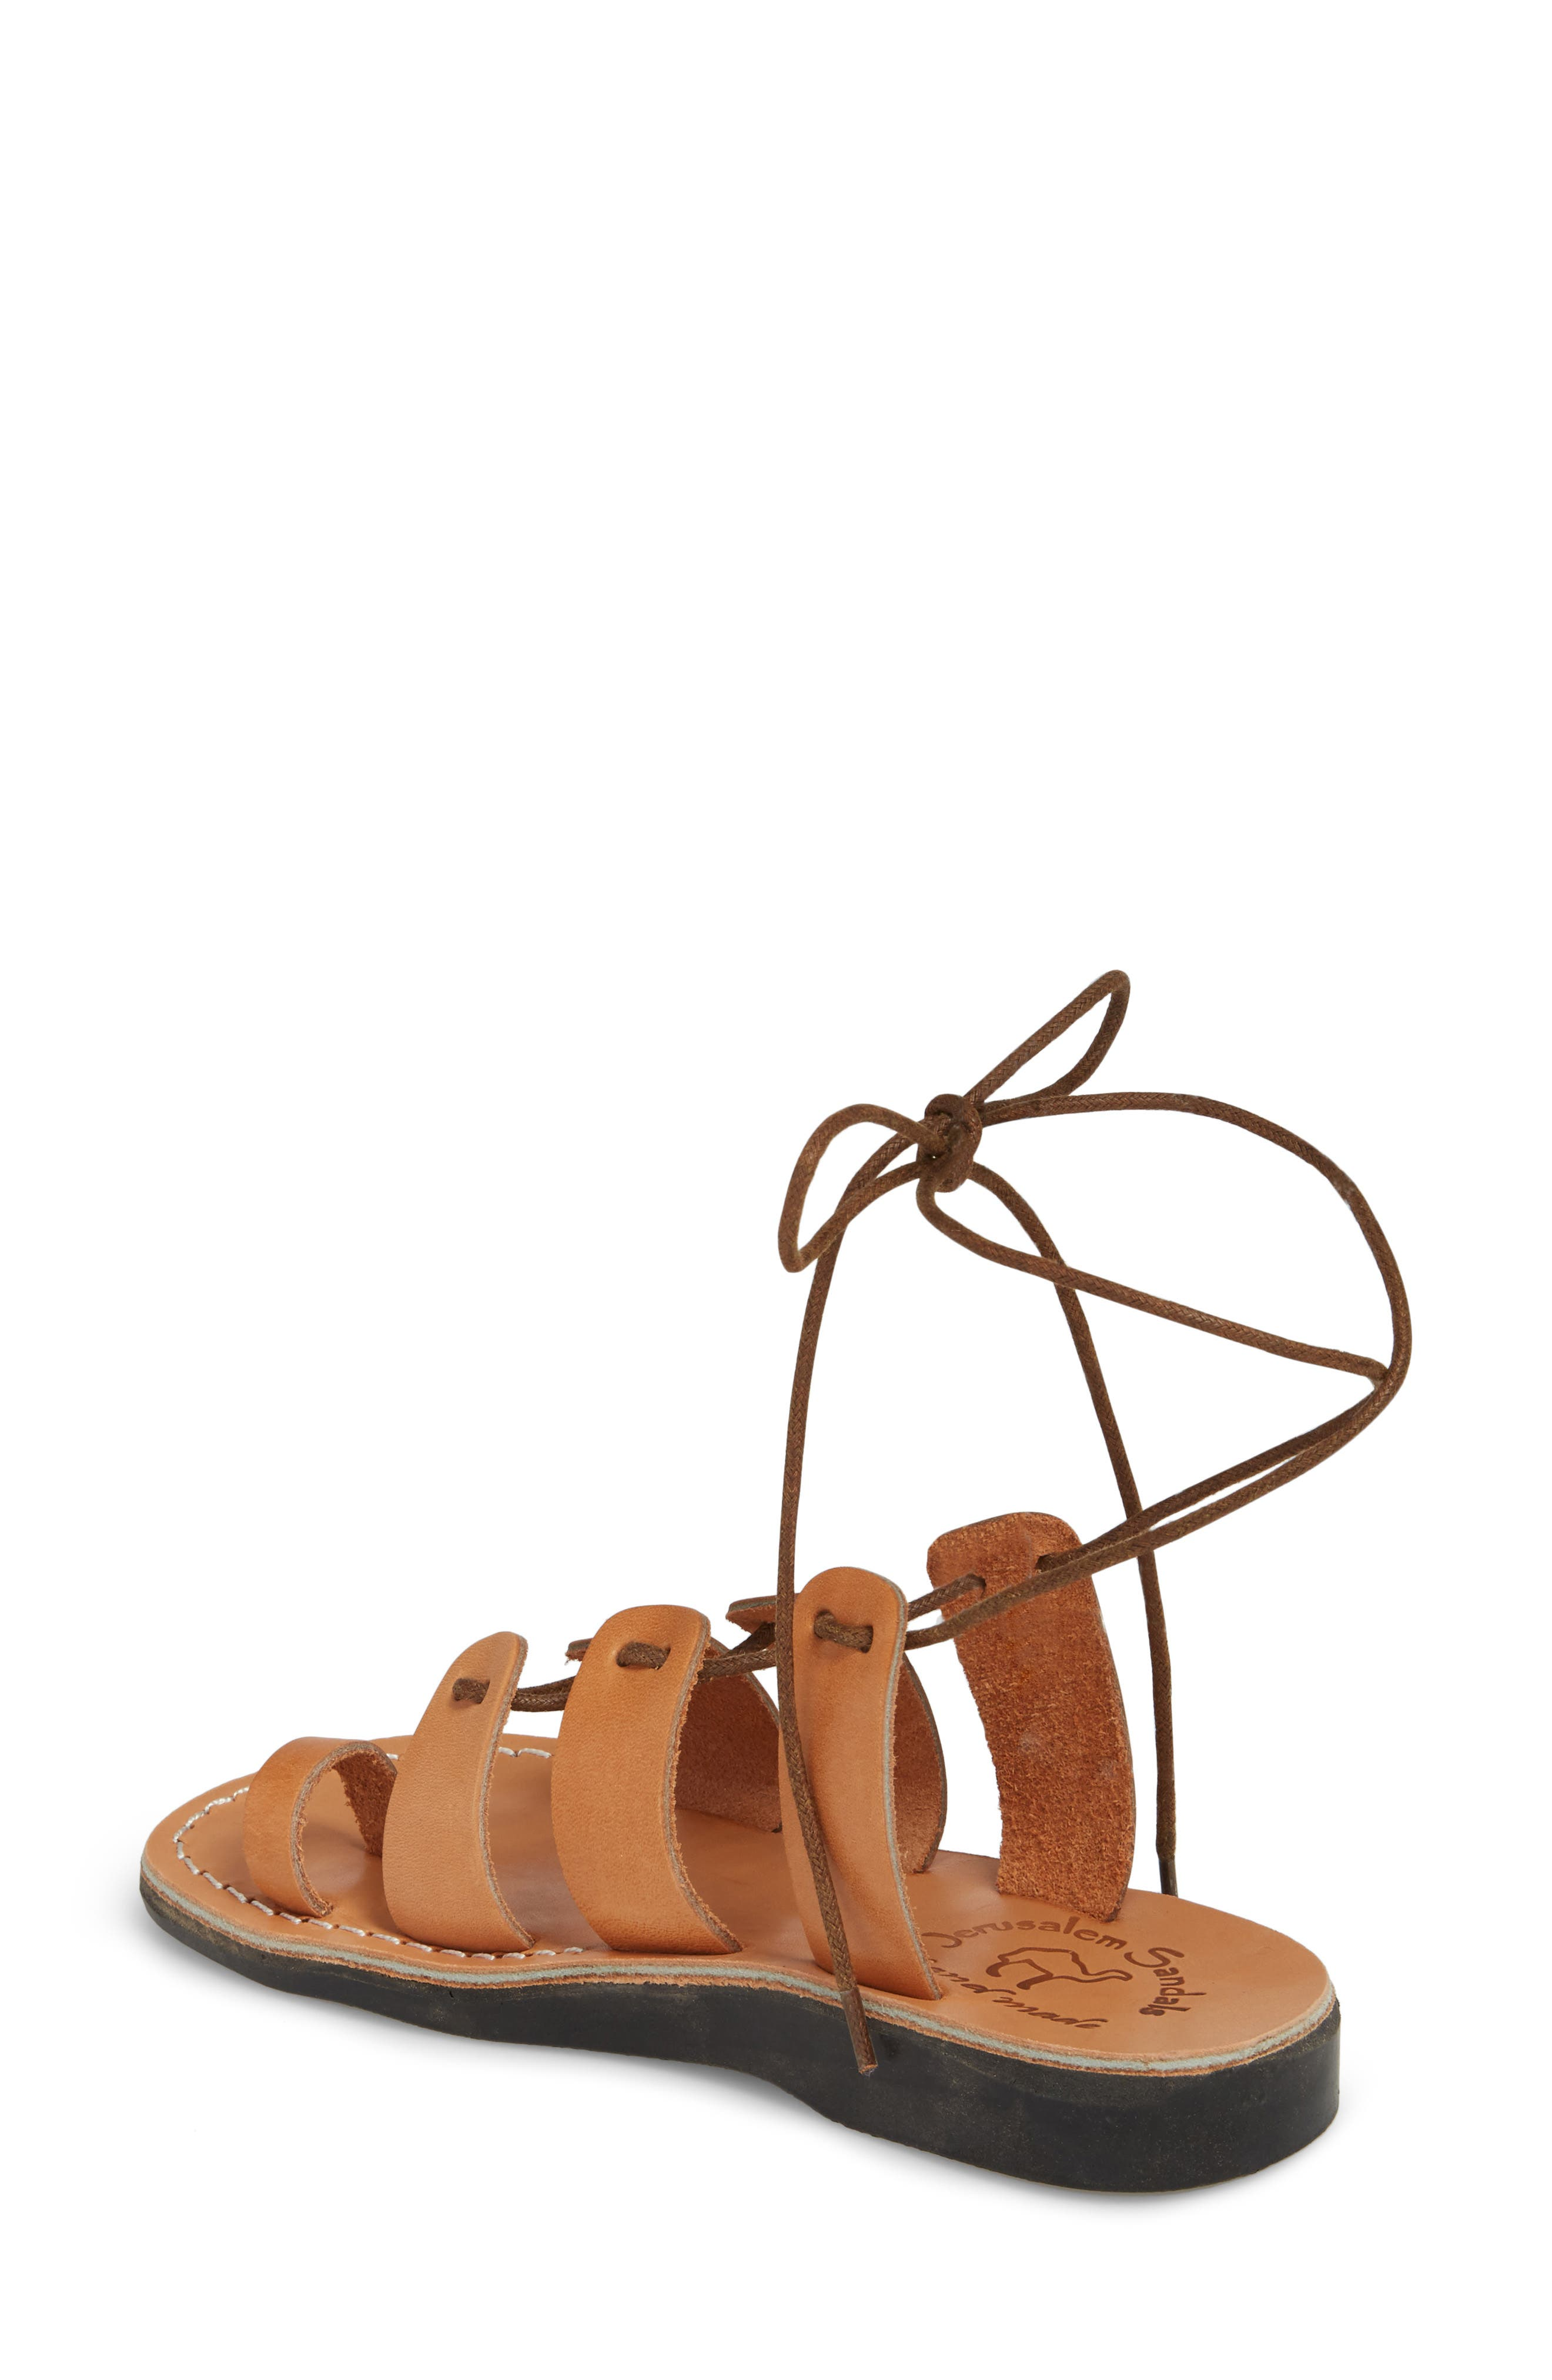 Deborah Wraparound Laces Sandal,                             Alternate thumbnail 2, color,                             Tan Leather